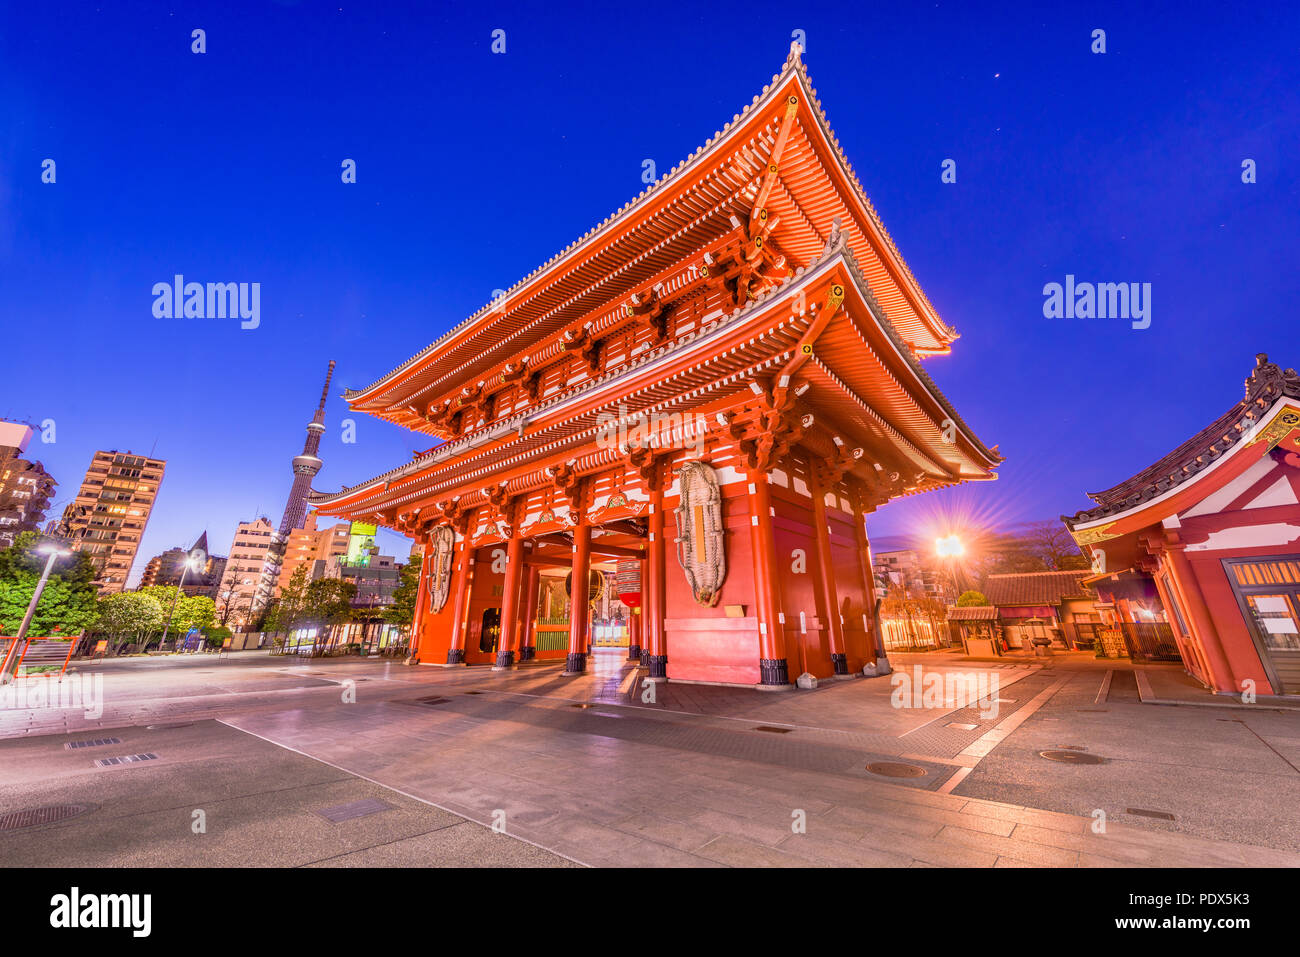 Tokyo, Japan at Sensoji Temple in the Asakusa district at dusk. - Stock Image